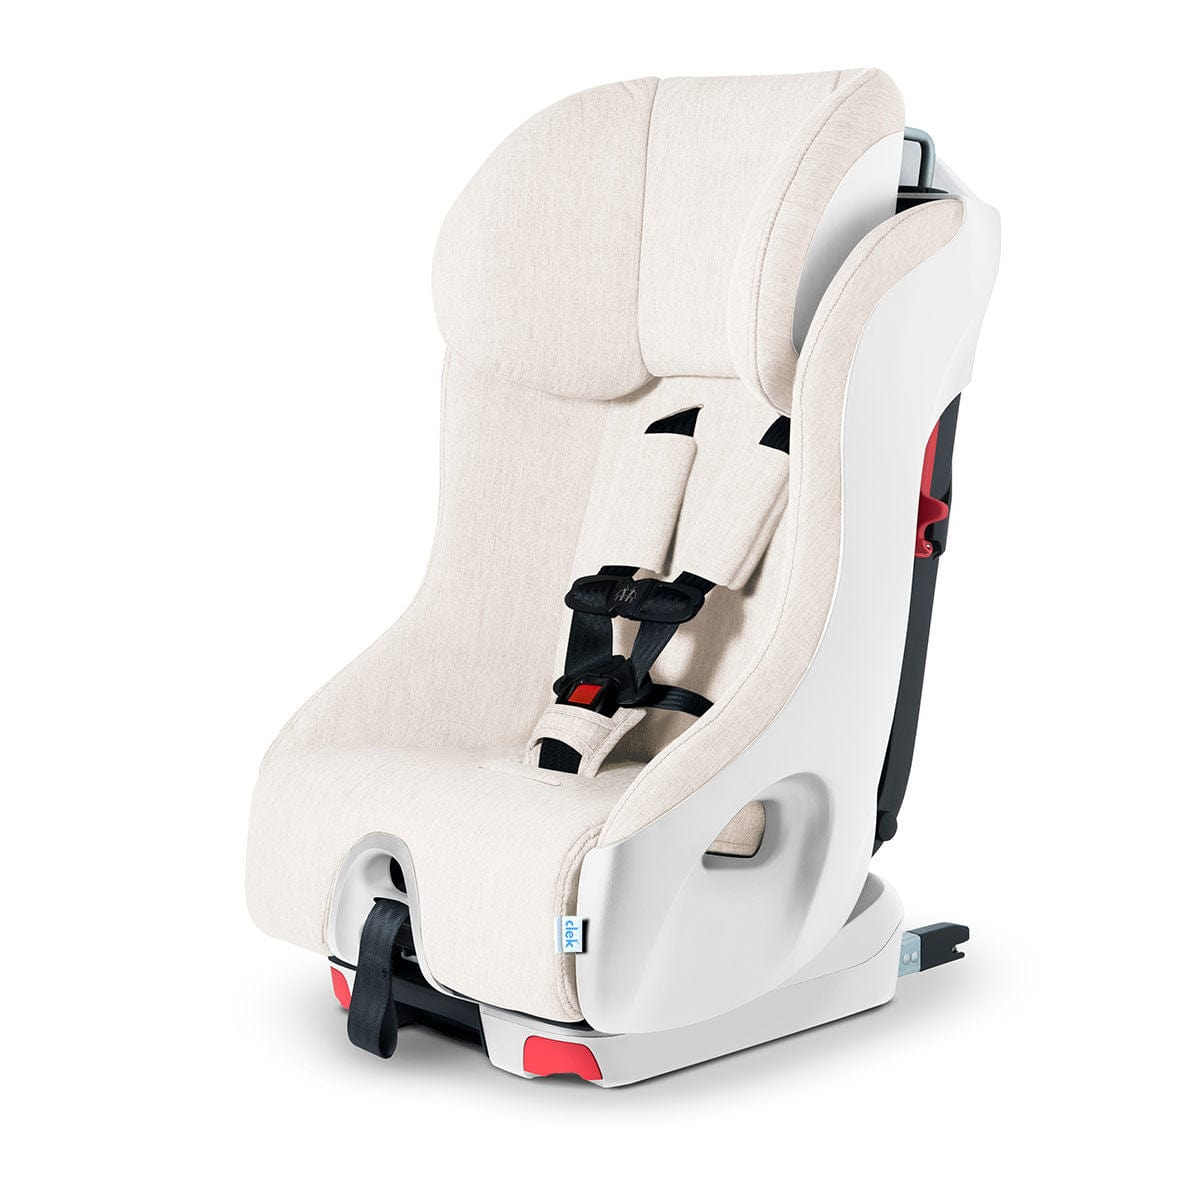 Clek 2021 Foonf Convertible Car Seat Tailored C-Zero Plus - Snow